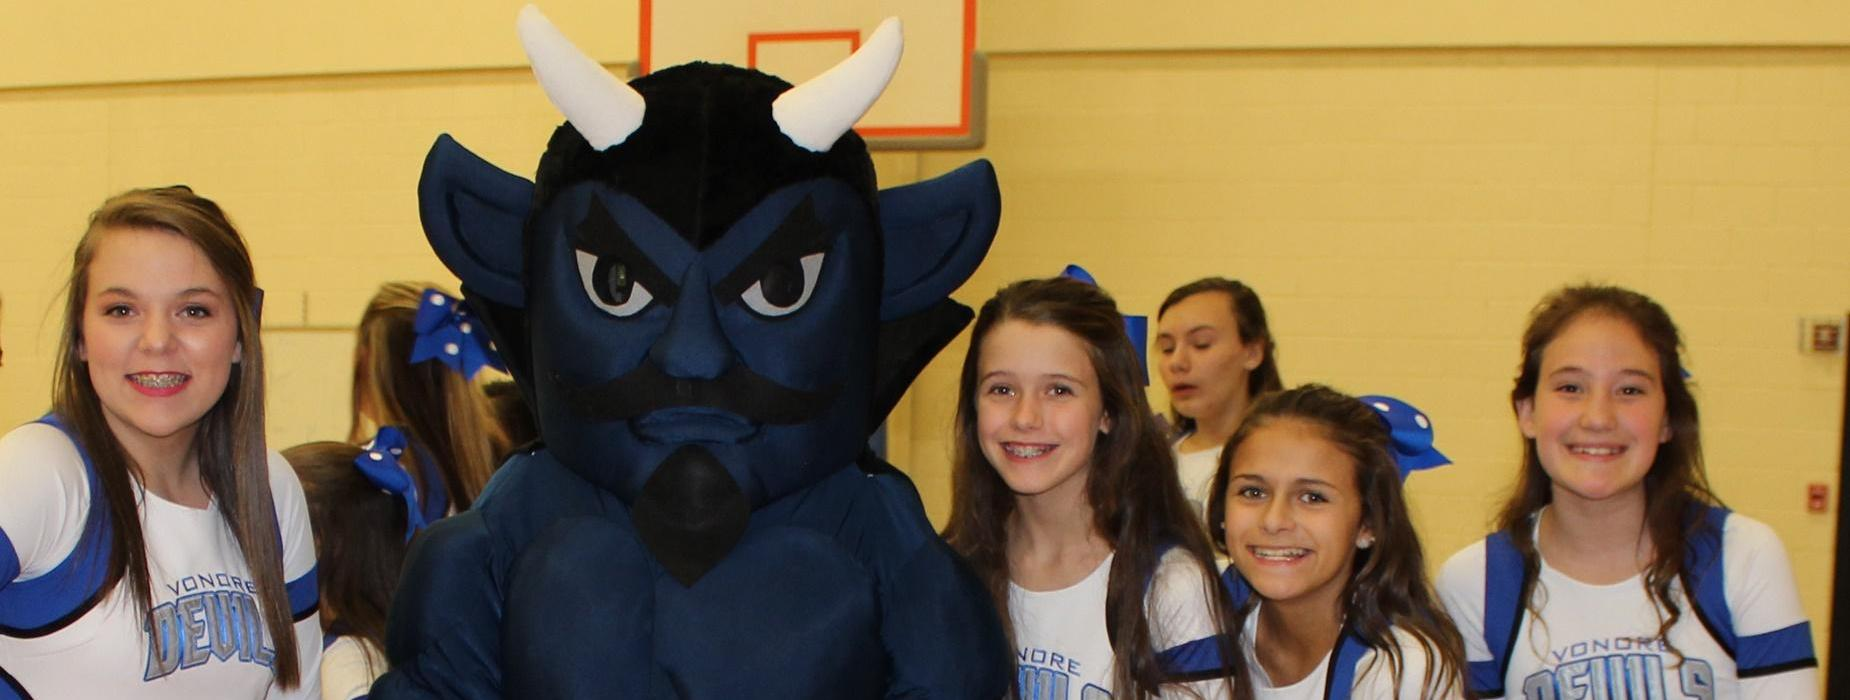 VMS Cheerleaders and devil mascot